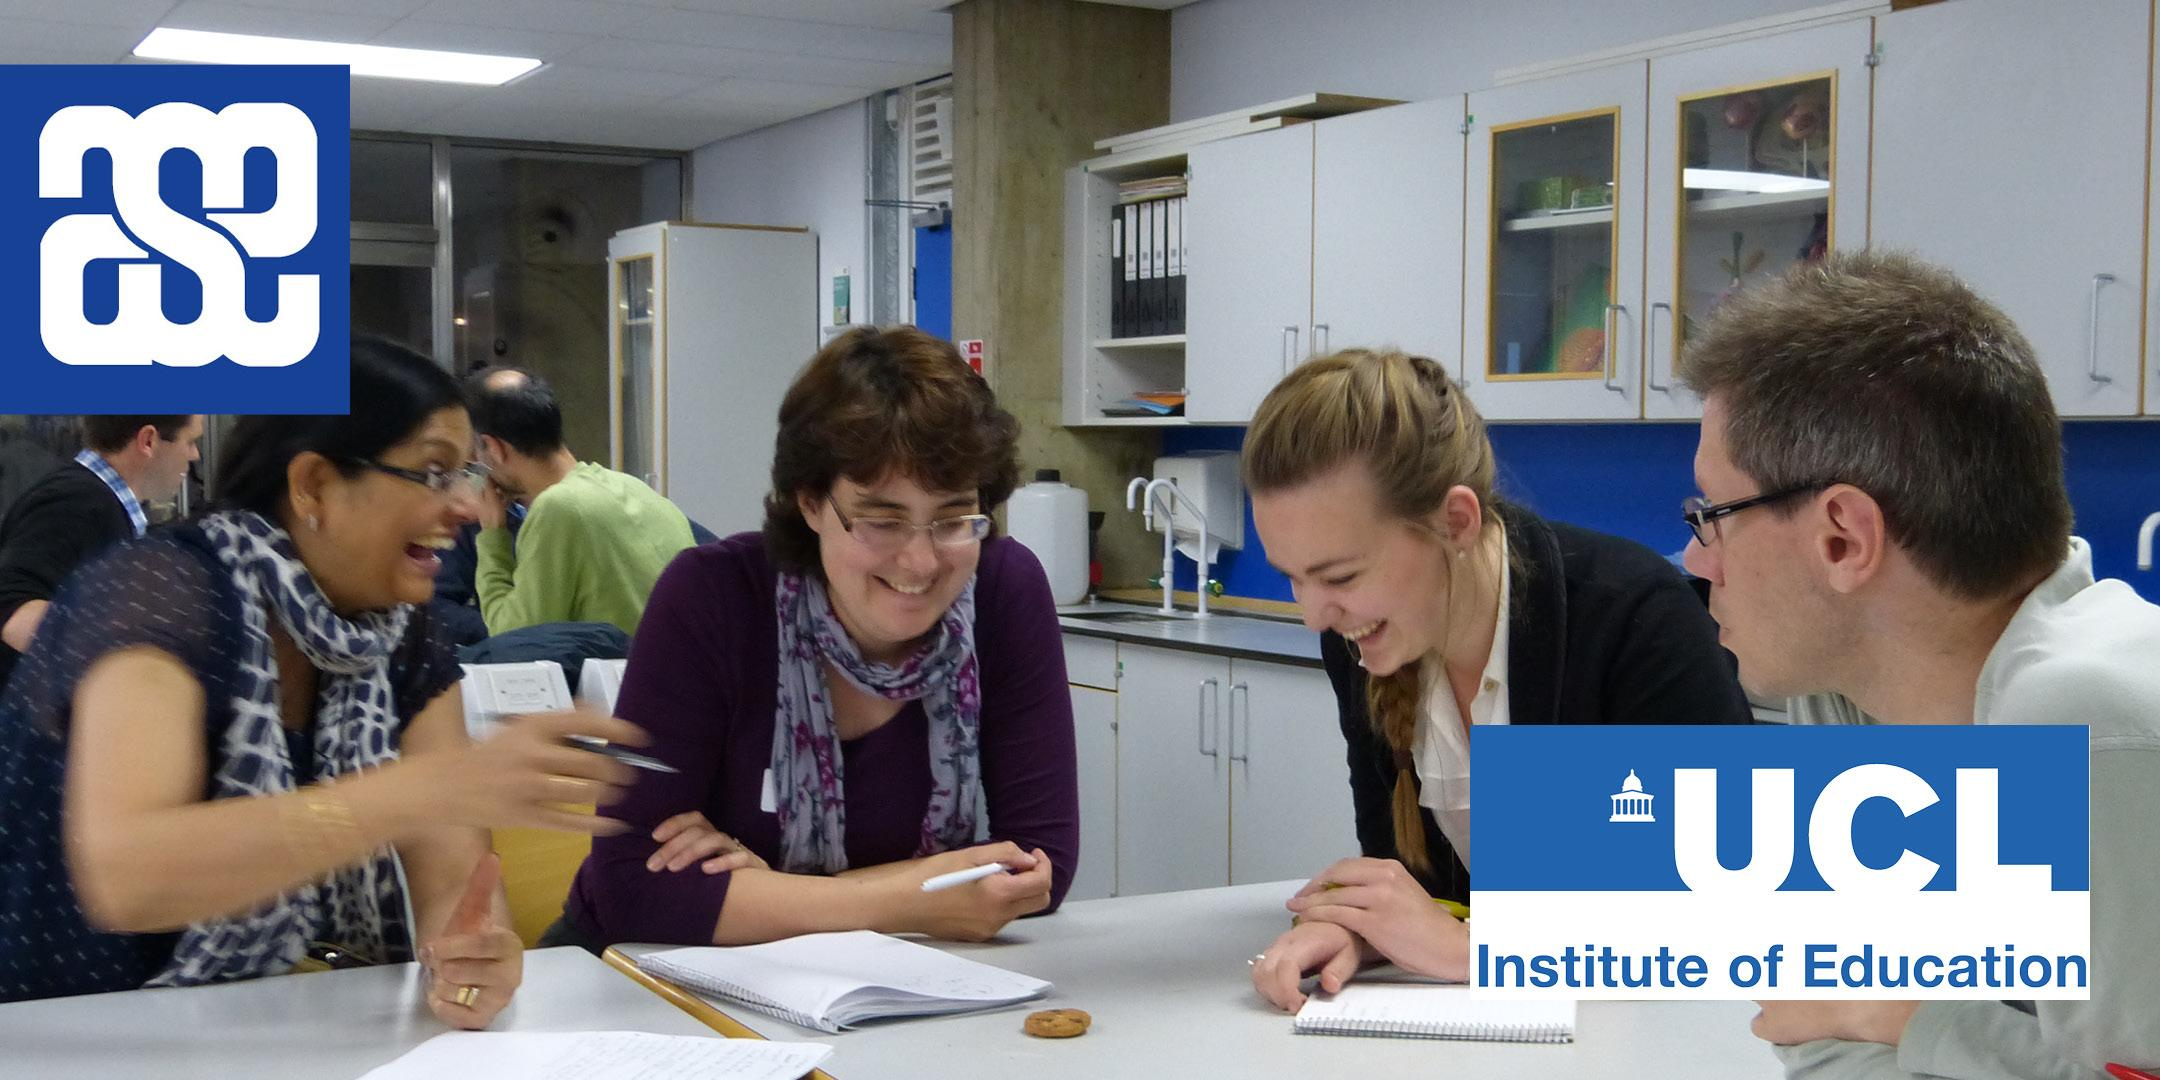 ASE/UCL Institute of Education - London Scien